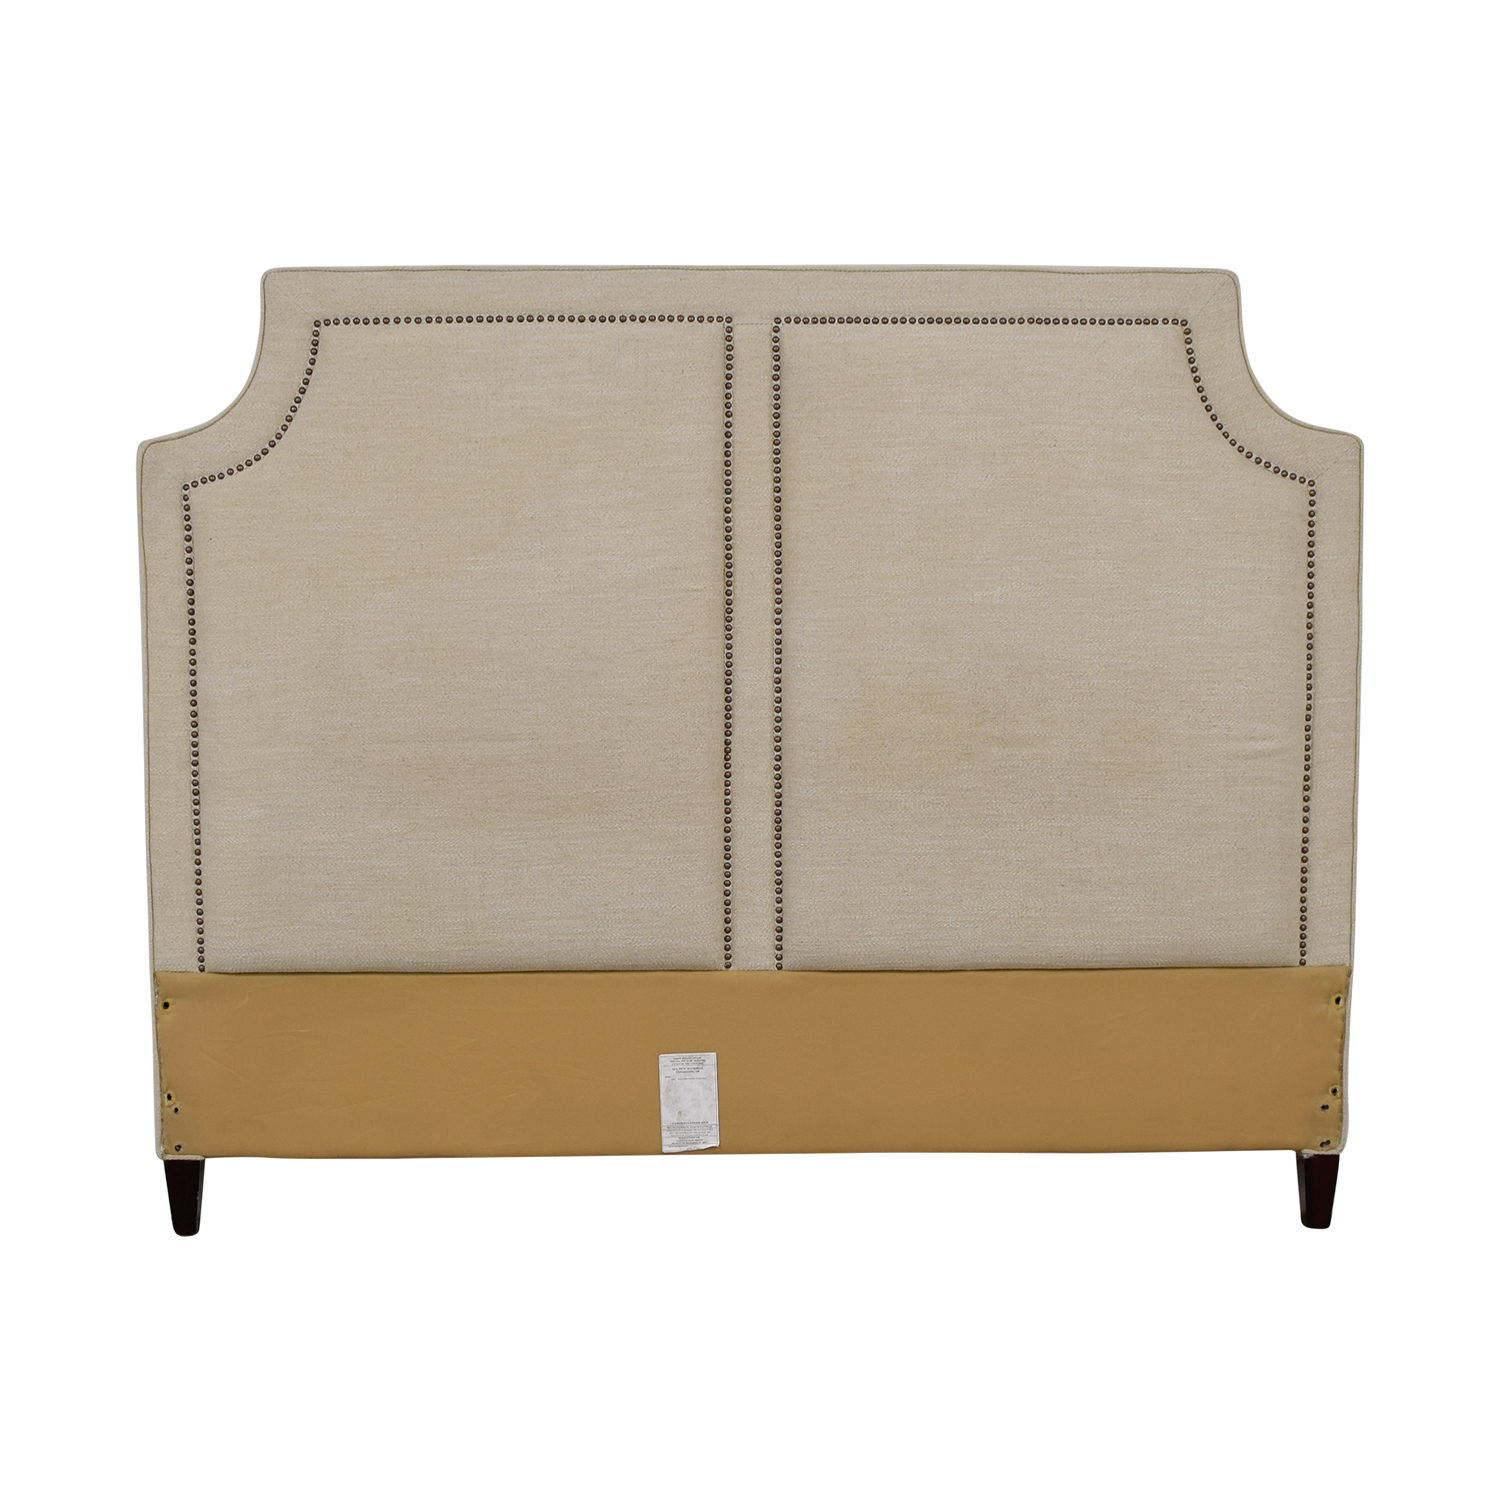 Thomasville Thomasville Beige Nailhead King Headboard discount